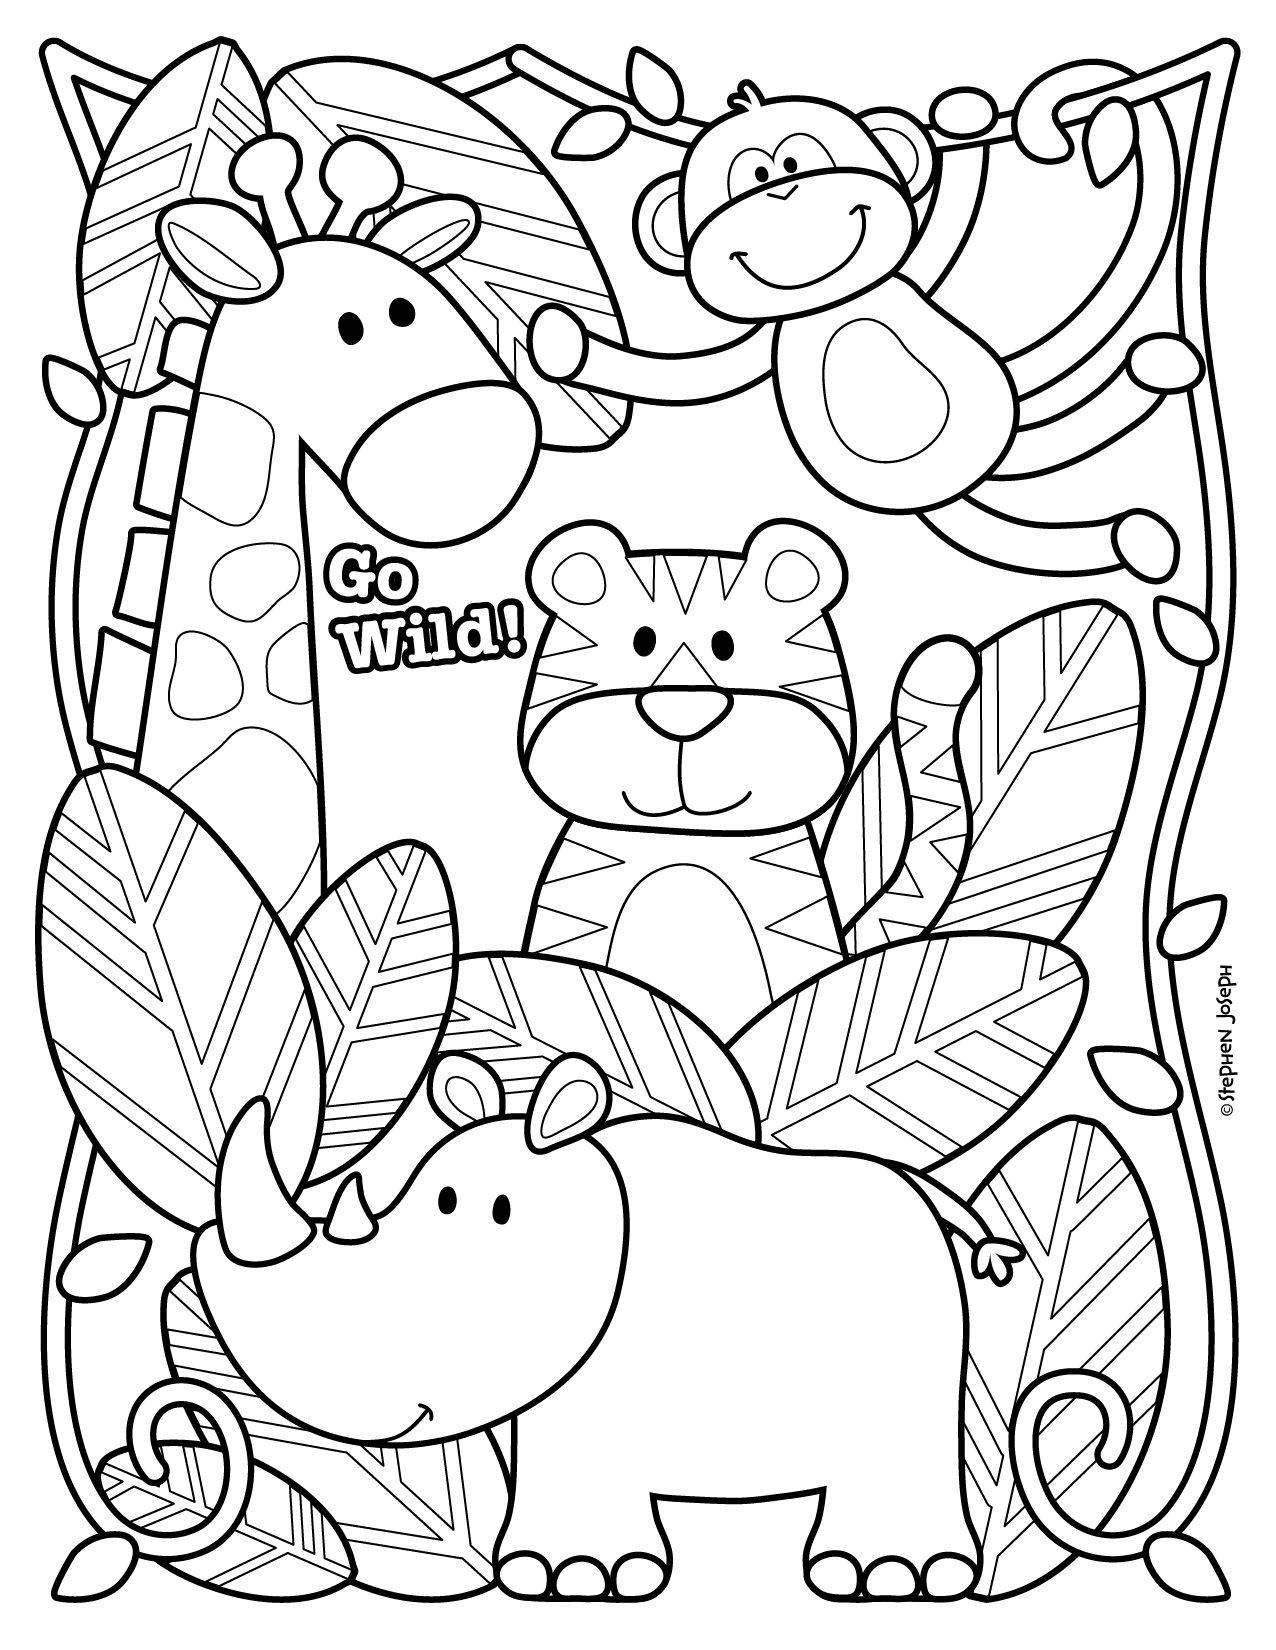 zoo animal coloring pages to print cartoon zoo animals coloring pages at getcoloringscom coloring to print zoo pages animal